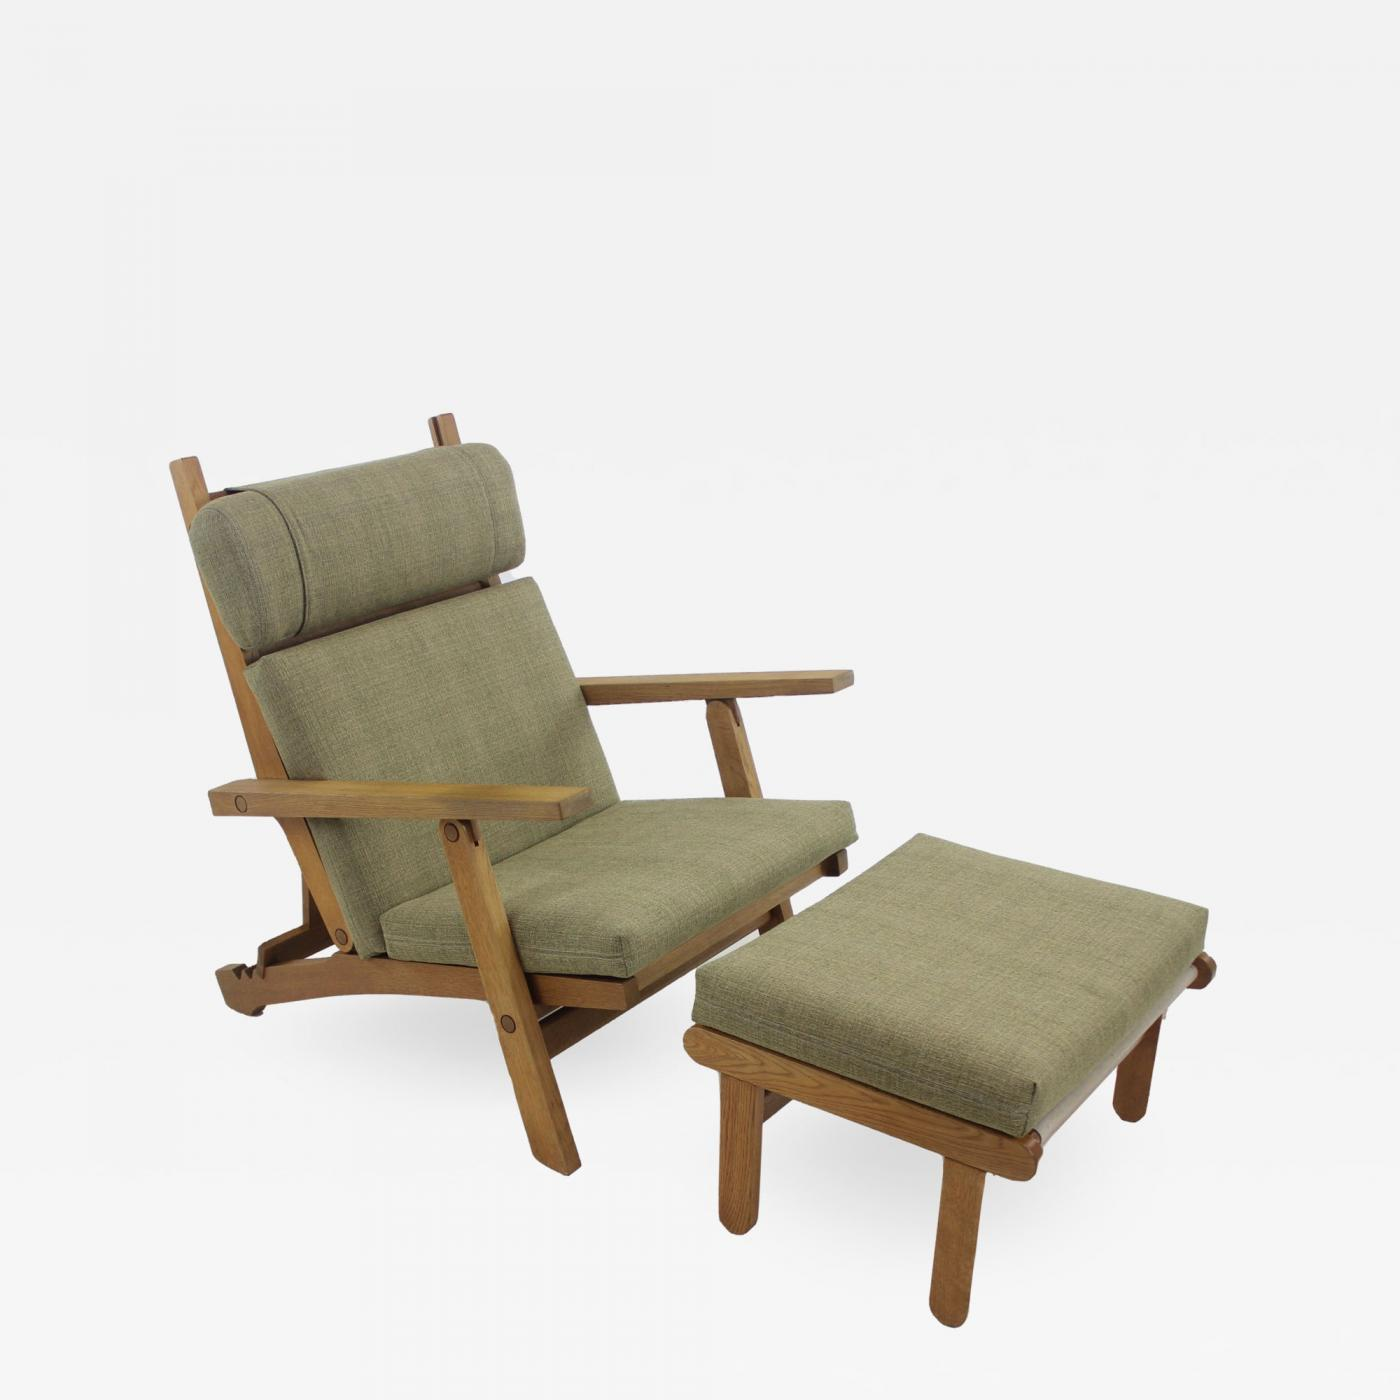 Chairs With Ottoman Hans Wegner Scandinavian Modern Oak Frame Lounge Chair Ottoman Designed By Hans Wegner